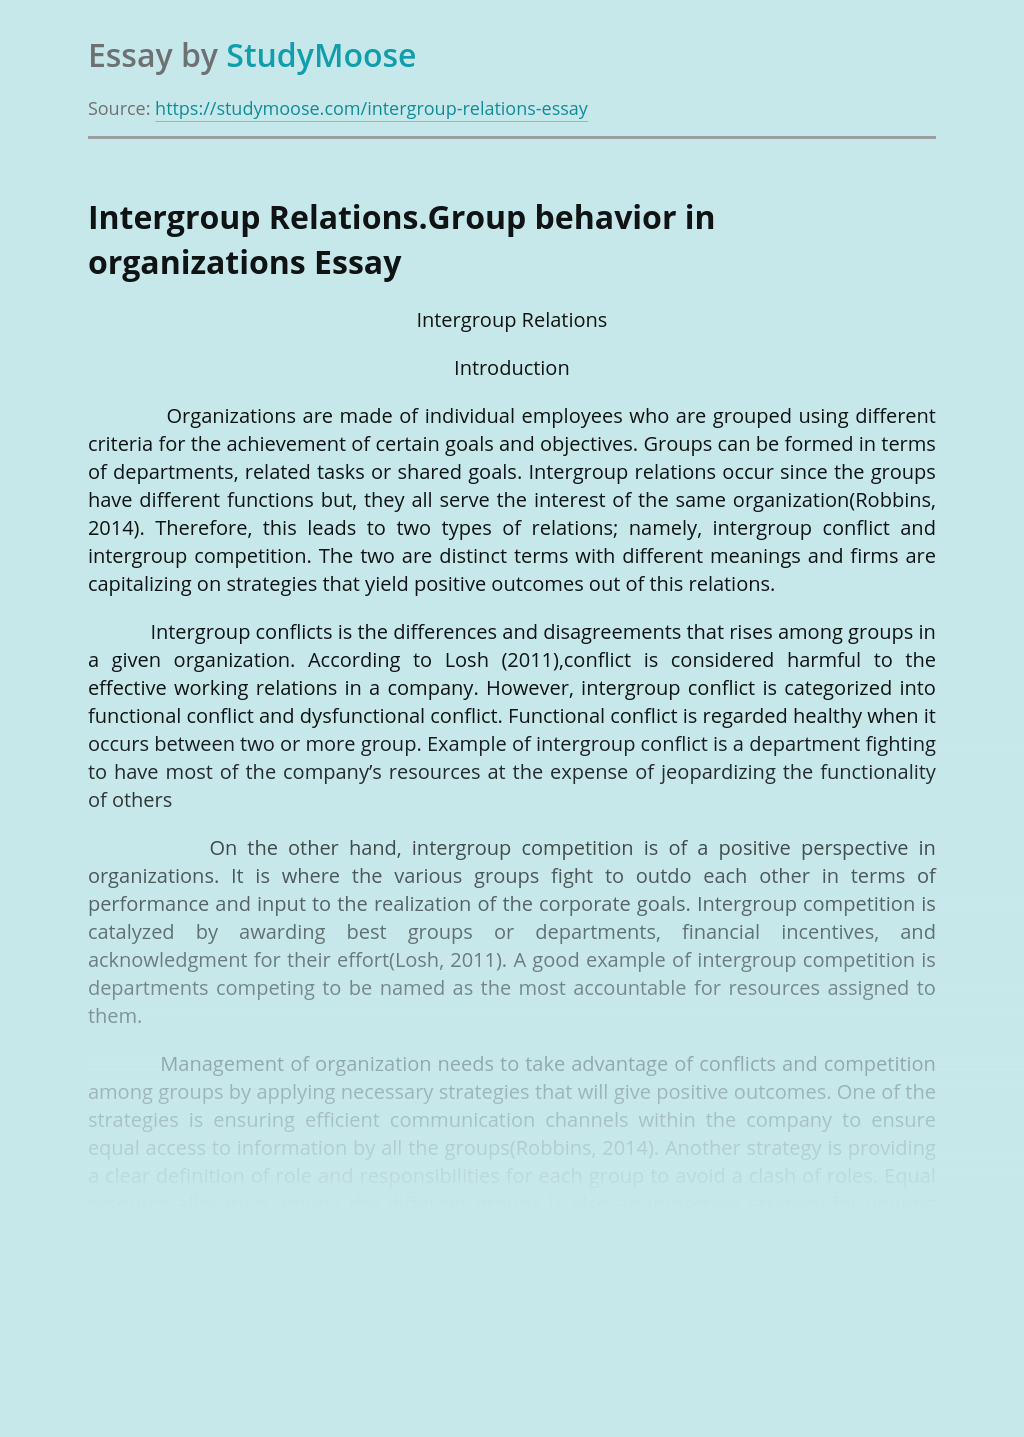 Intergroup Relations.Group behavior in organizations